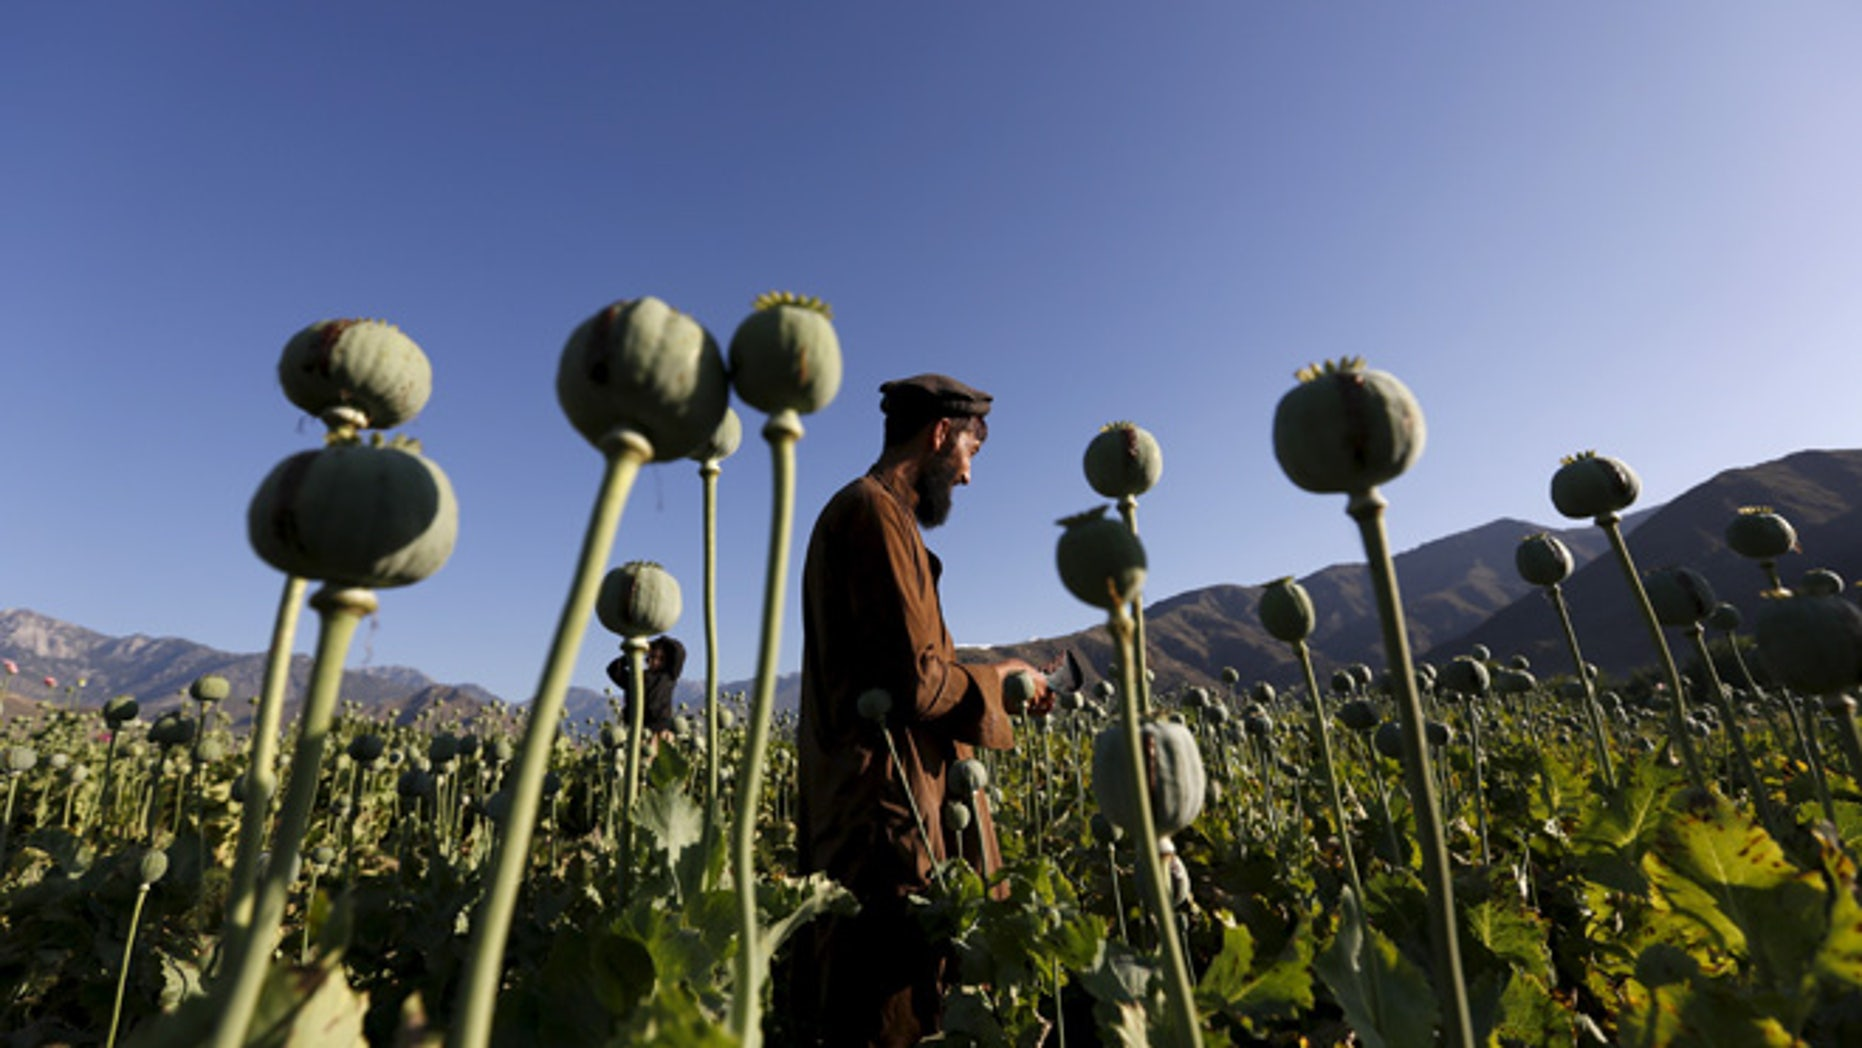 An Afghan man works on a poppy field in Nangarhar province, Afghanistan April 20, 2016.